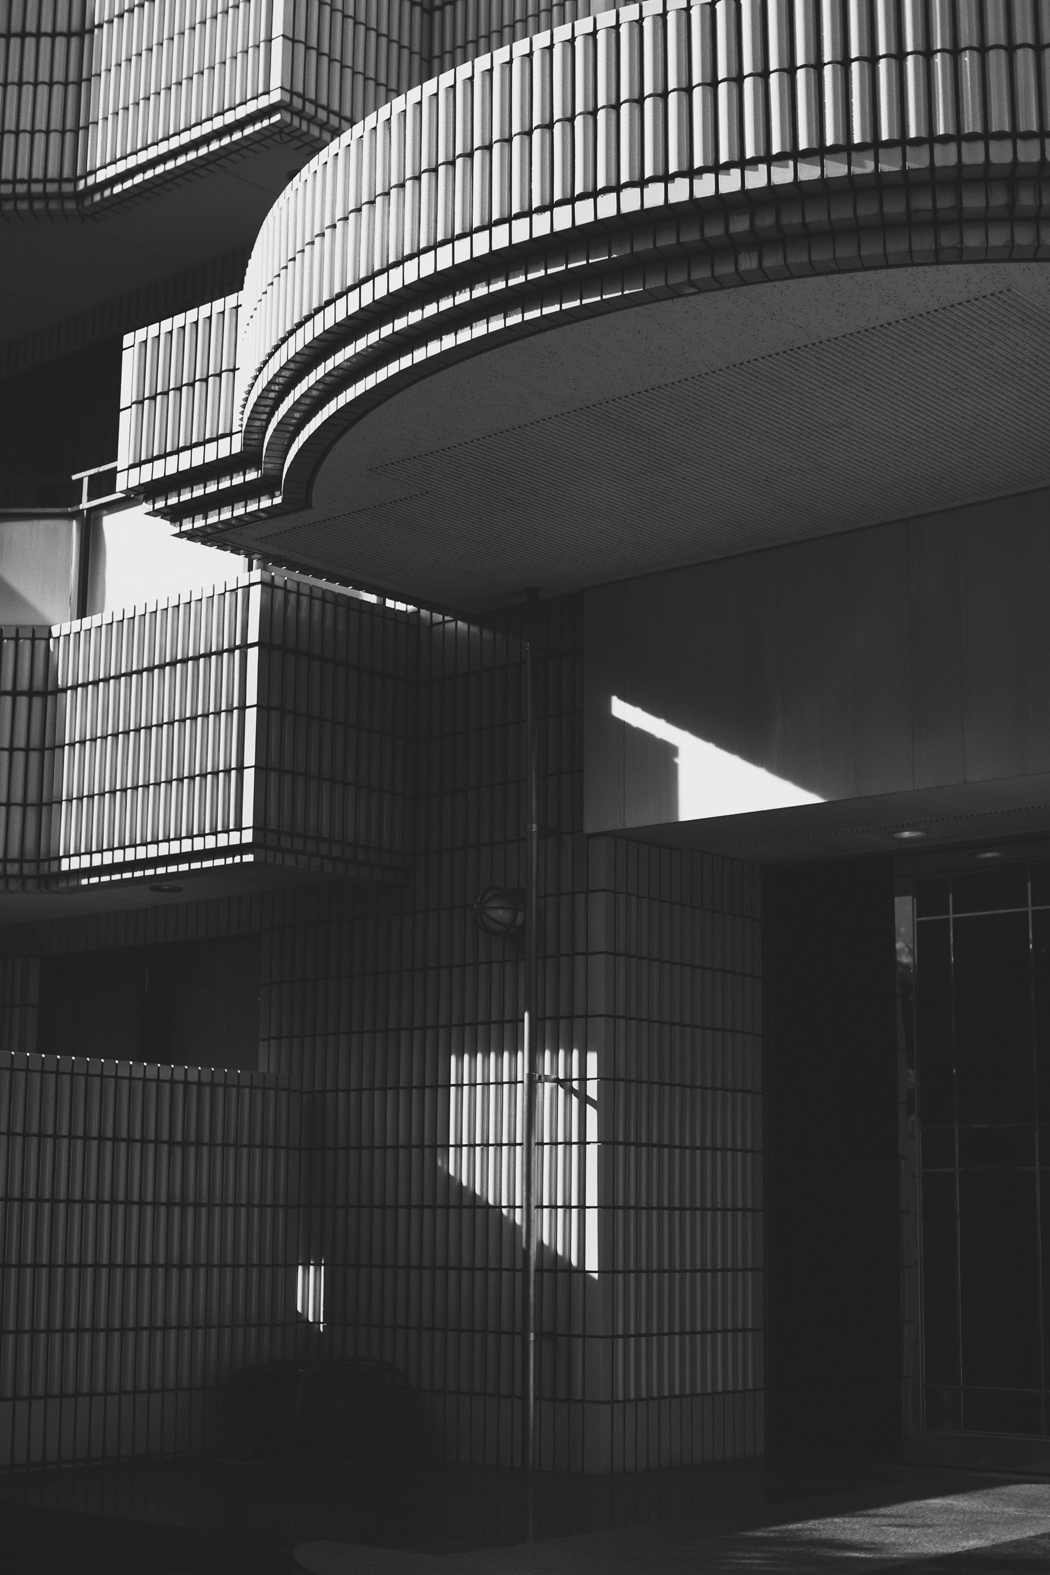 A visual Story: The Architecture Of Tokyo - Photography by Fiona Dinkelbach